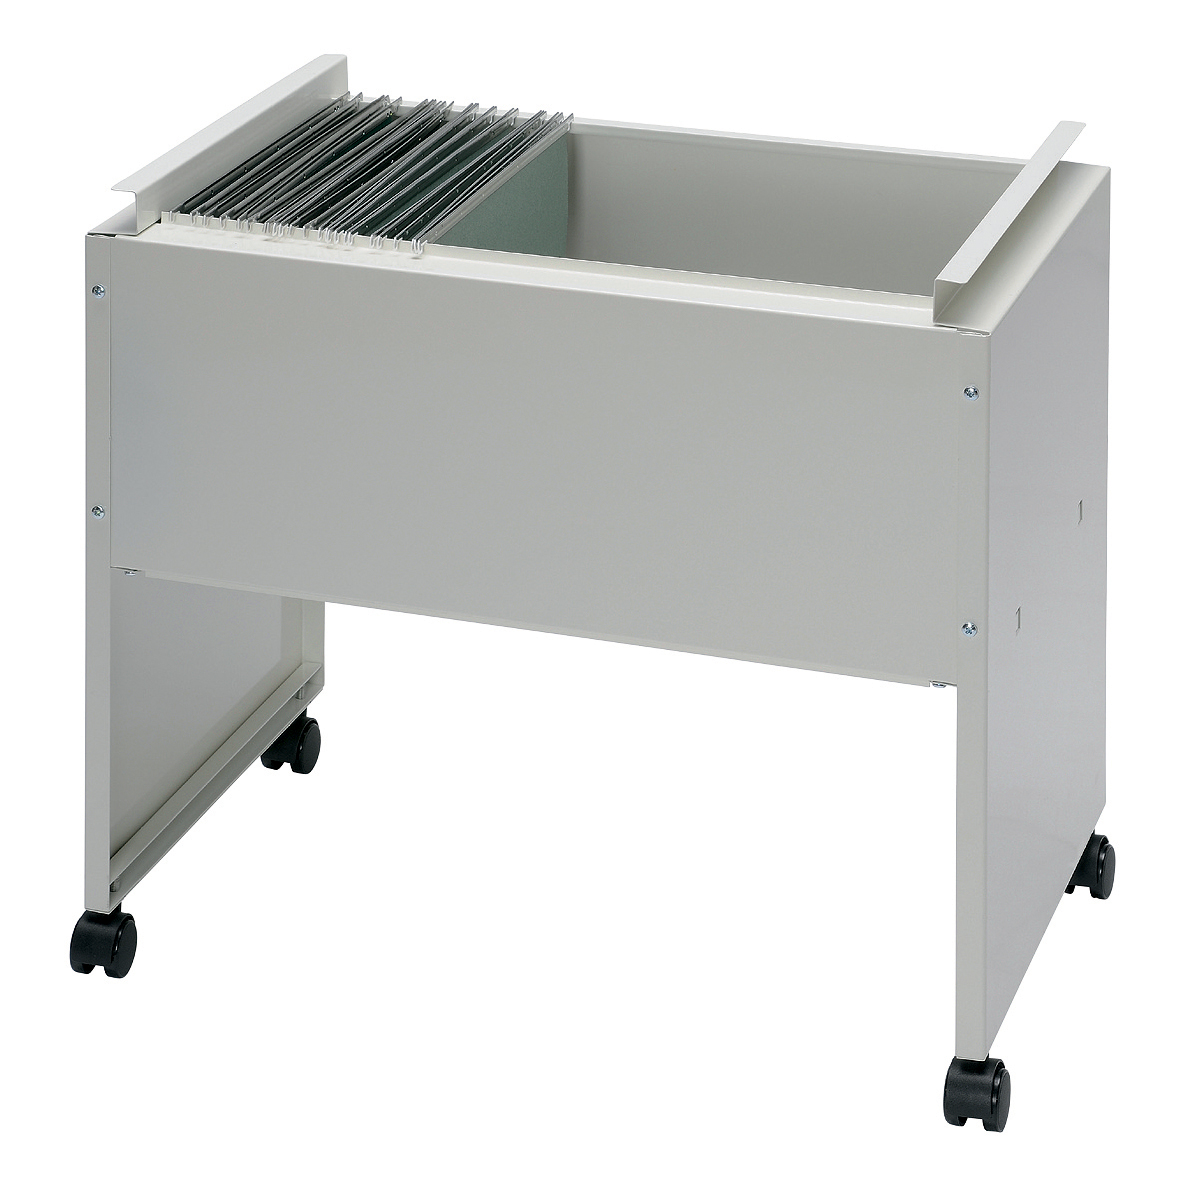 Filing Universal Filing Trolley Steel Capacity 120 A4 or Foolscap Susp Files W650xD420xH580mm Grey